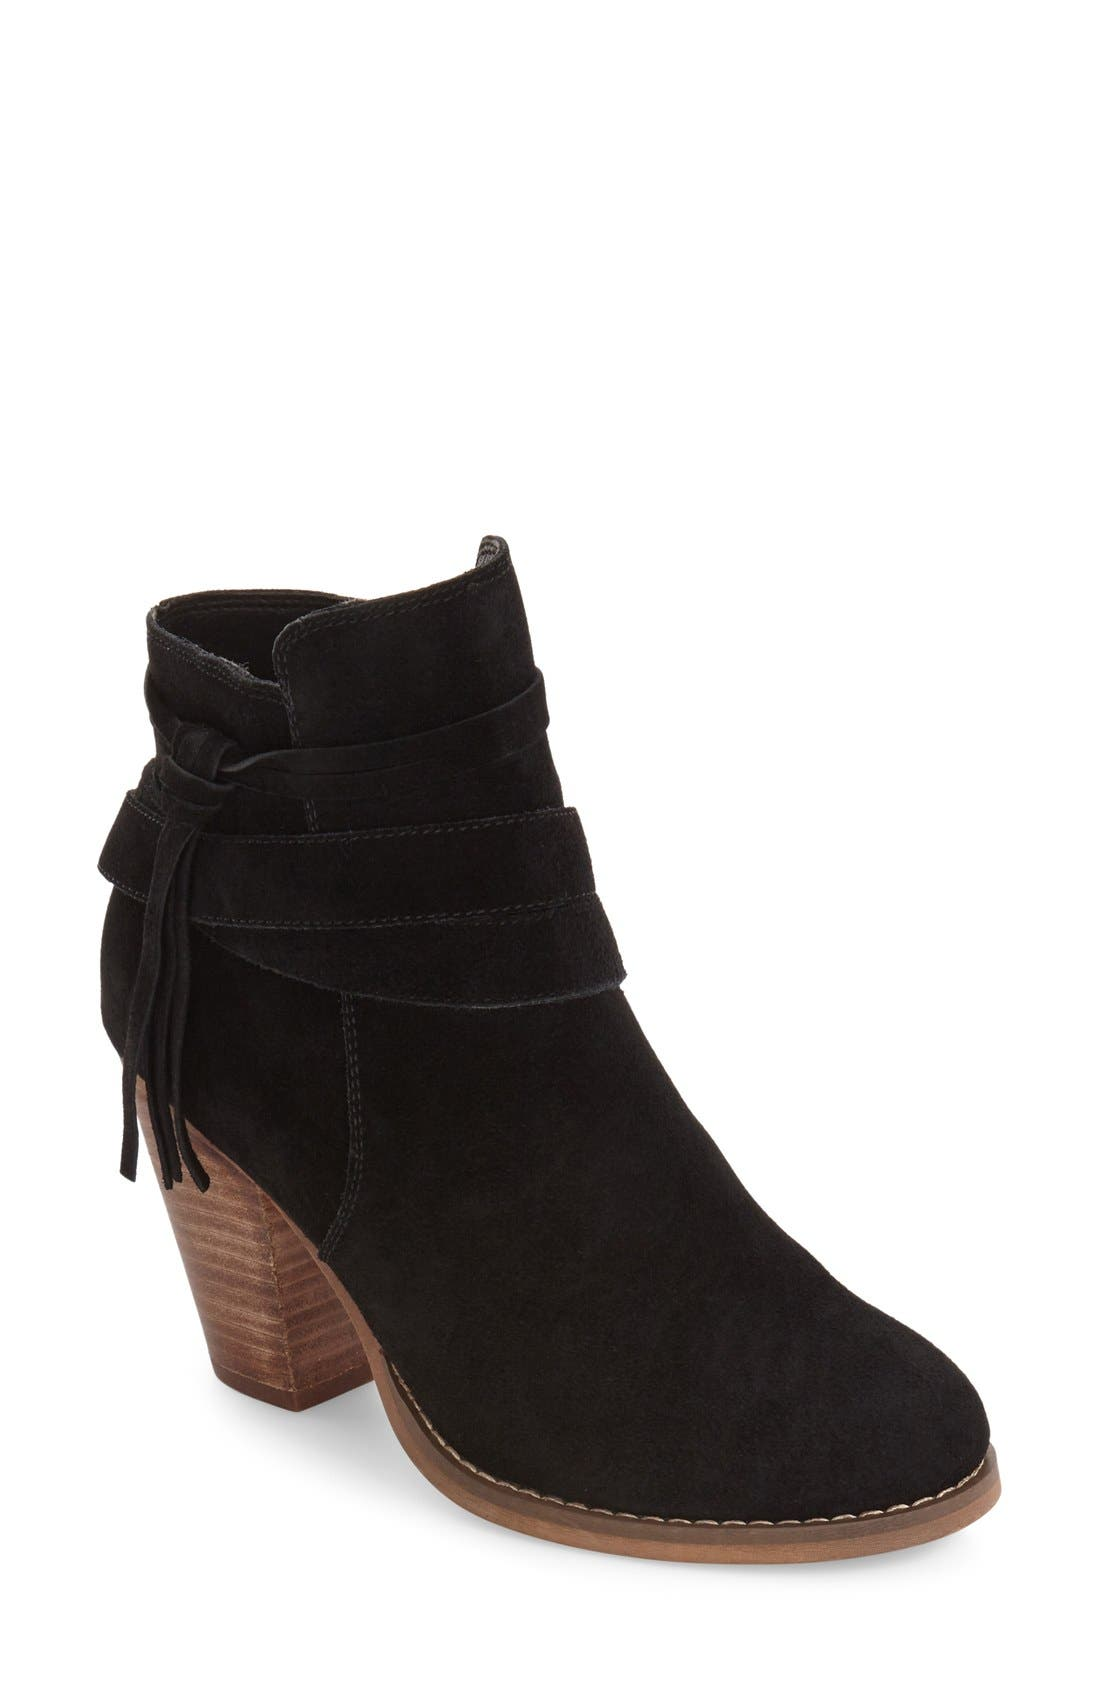 Rumi Bootie,                             Main thumbnail 1, color,                             BLACK